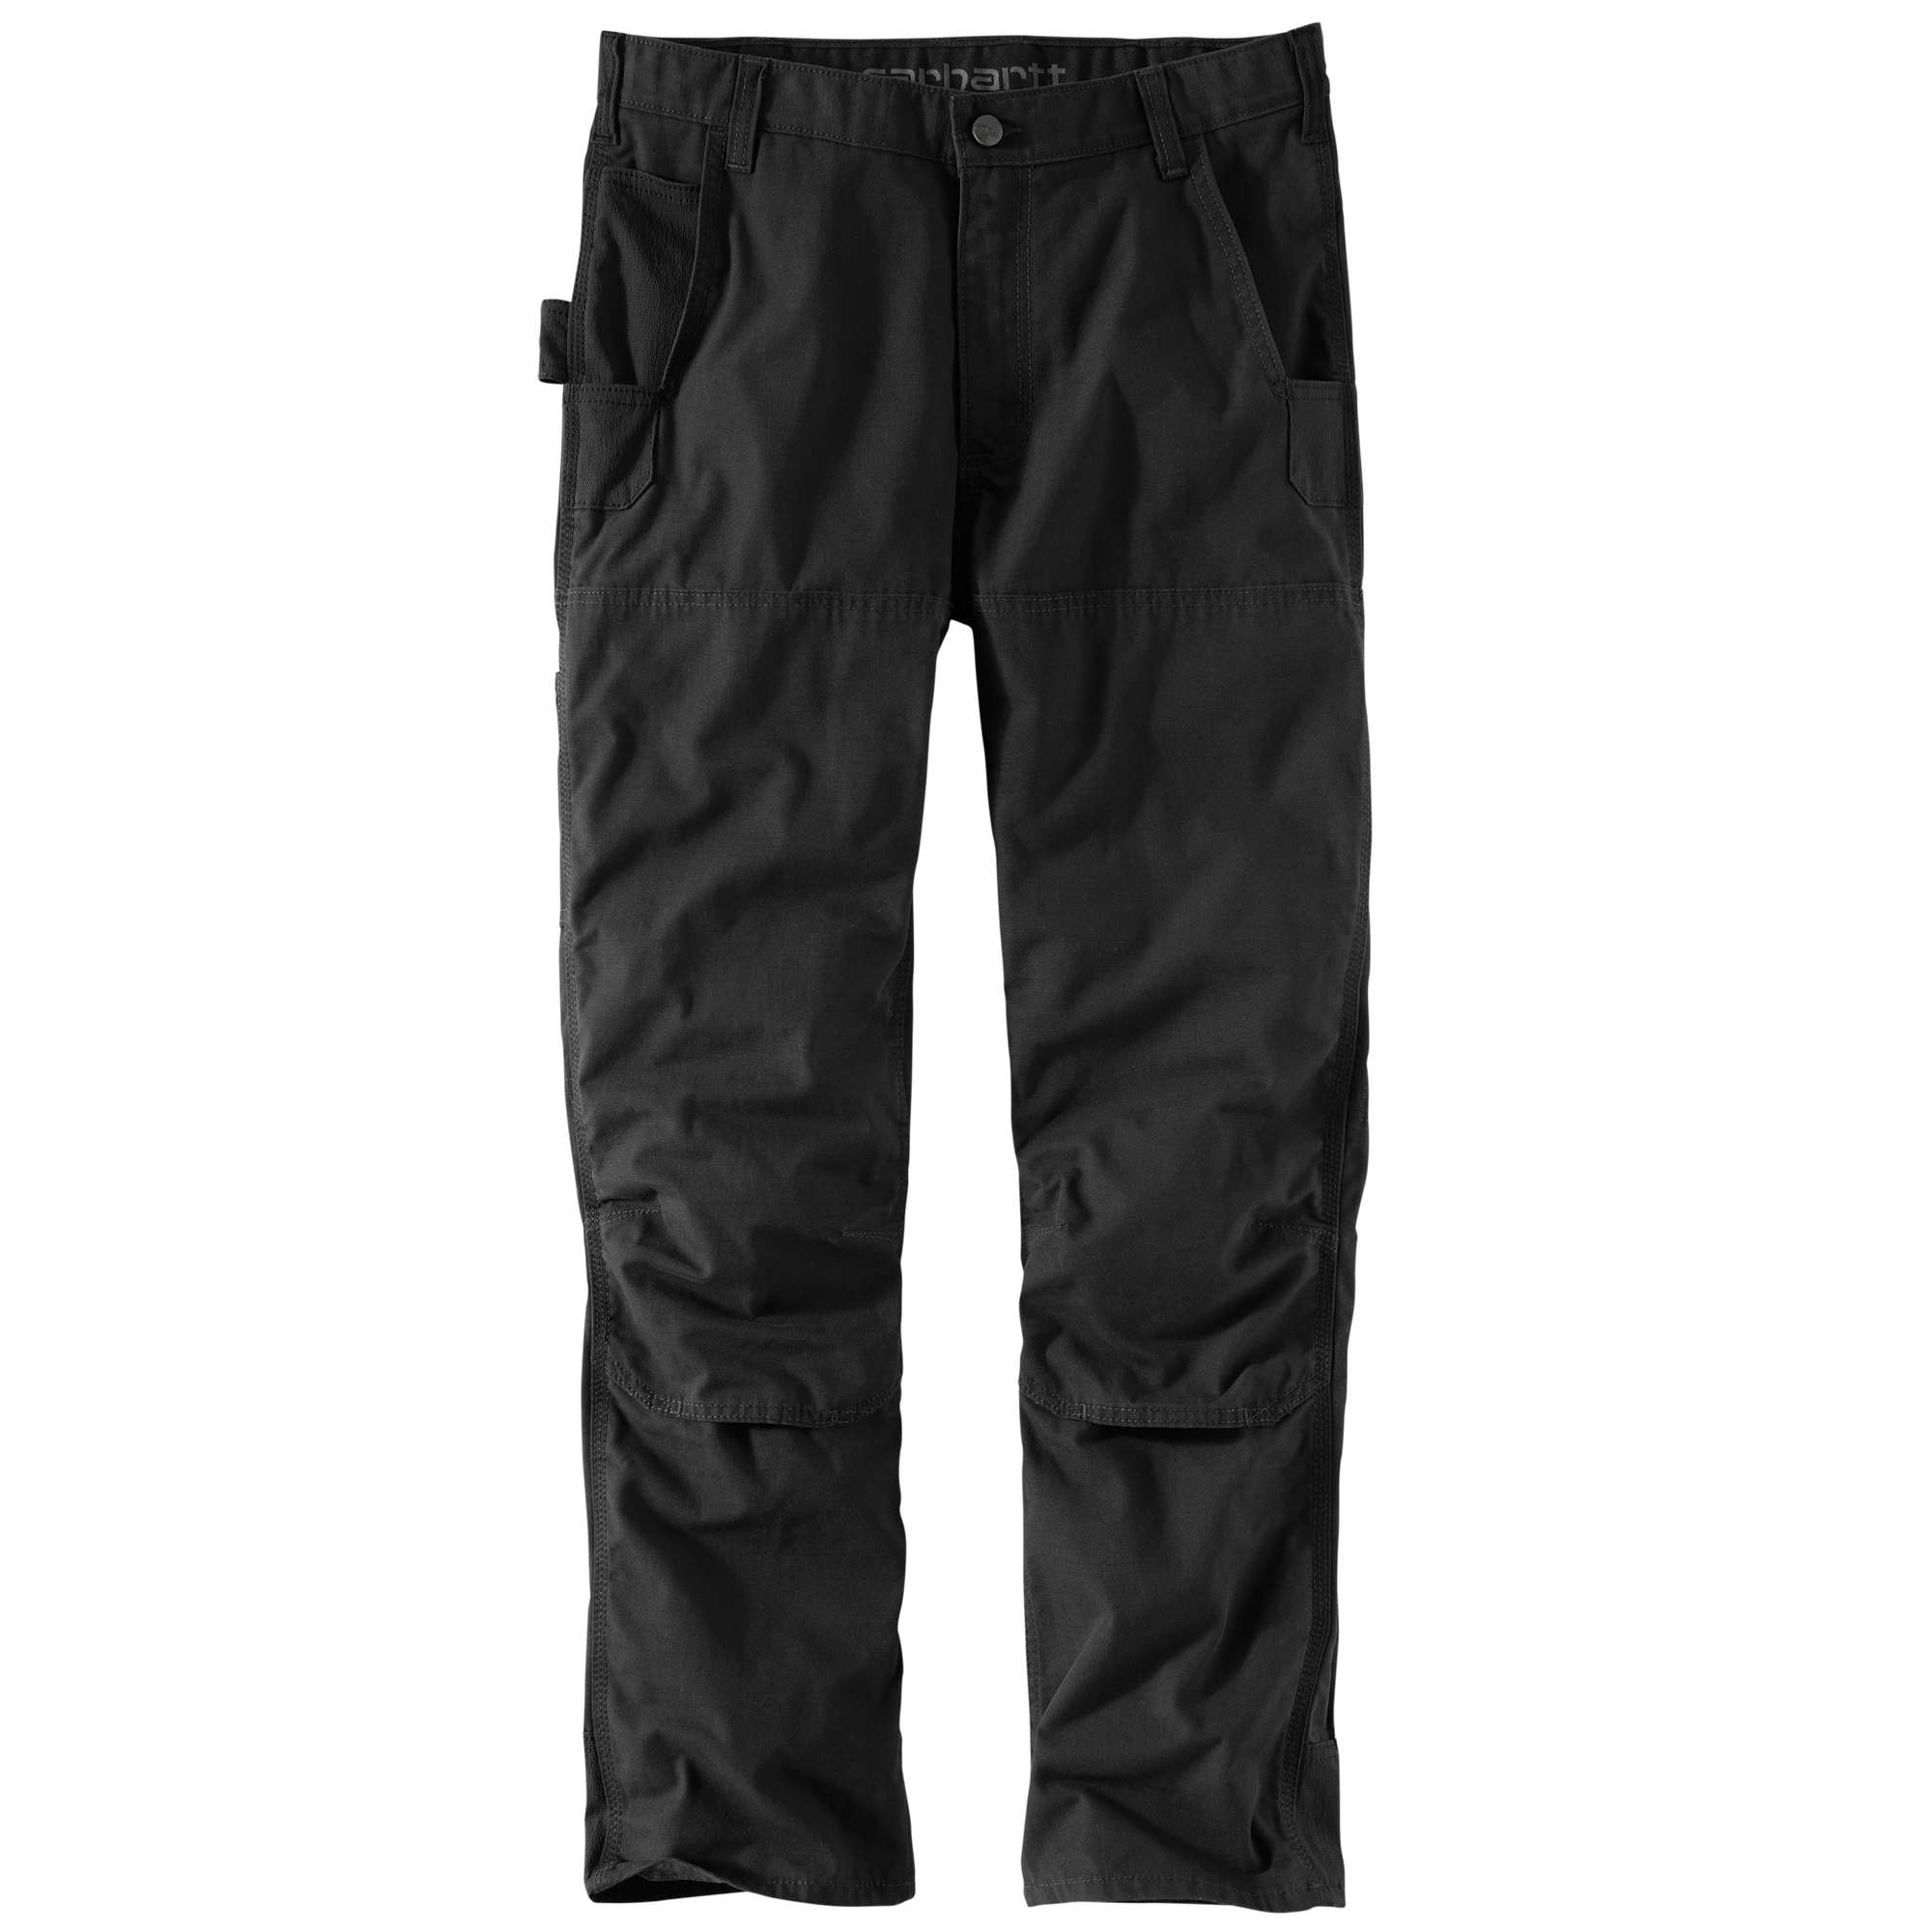 MEN'S FULL SWING® STEEL DOUBLE FRONT PANT